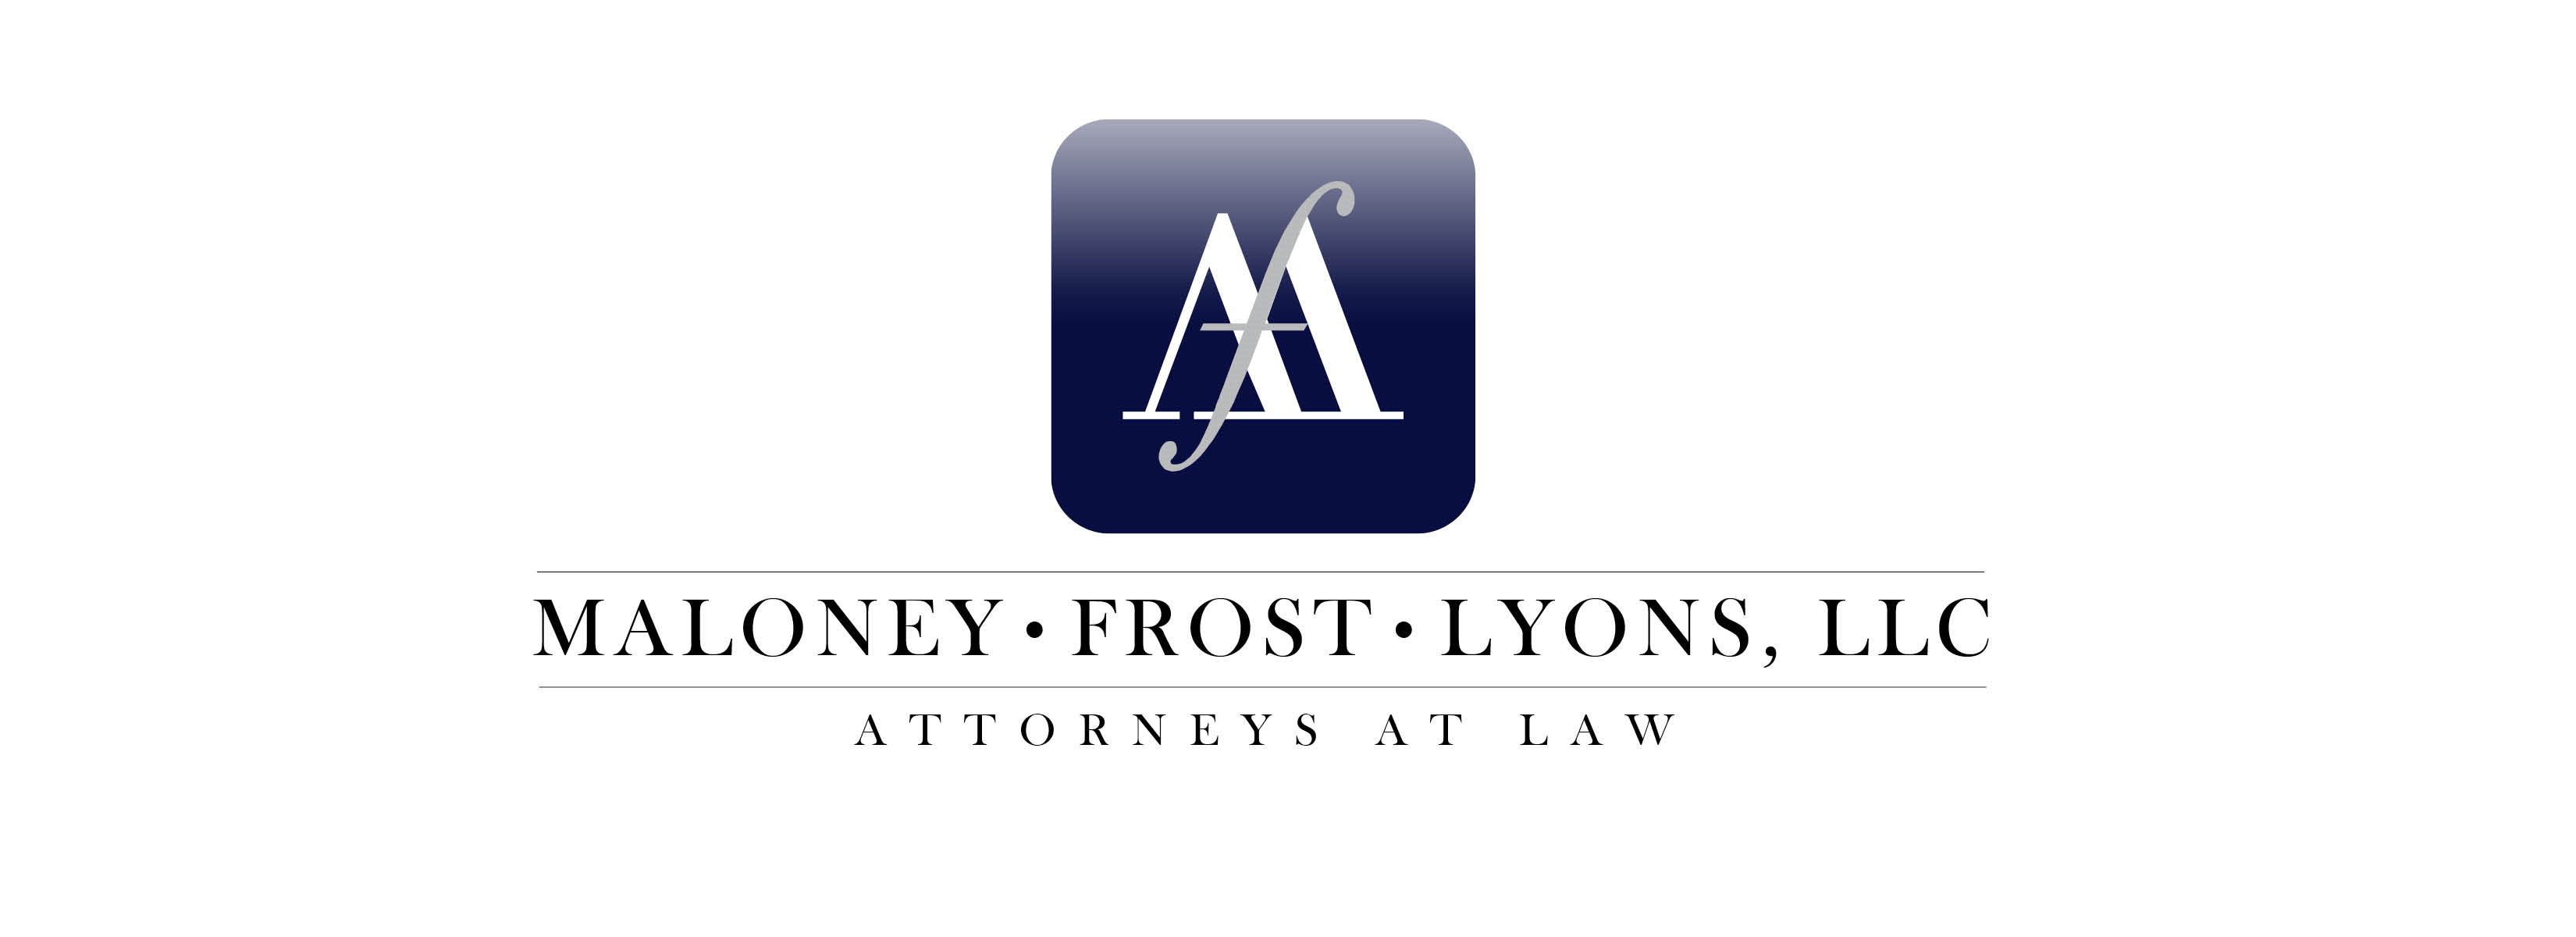 Maloney*Frost*Lyons, LLC